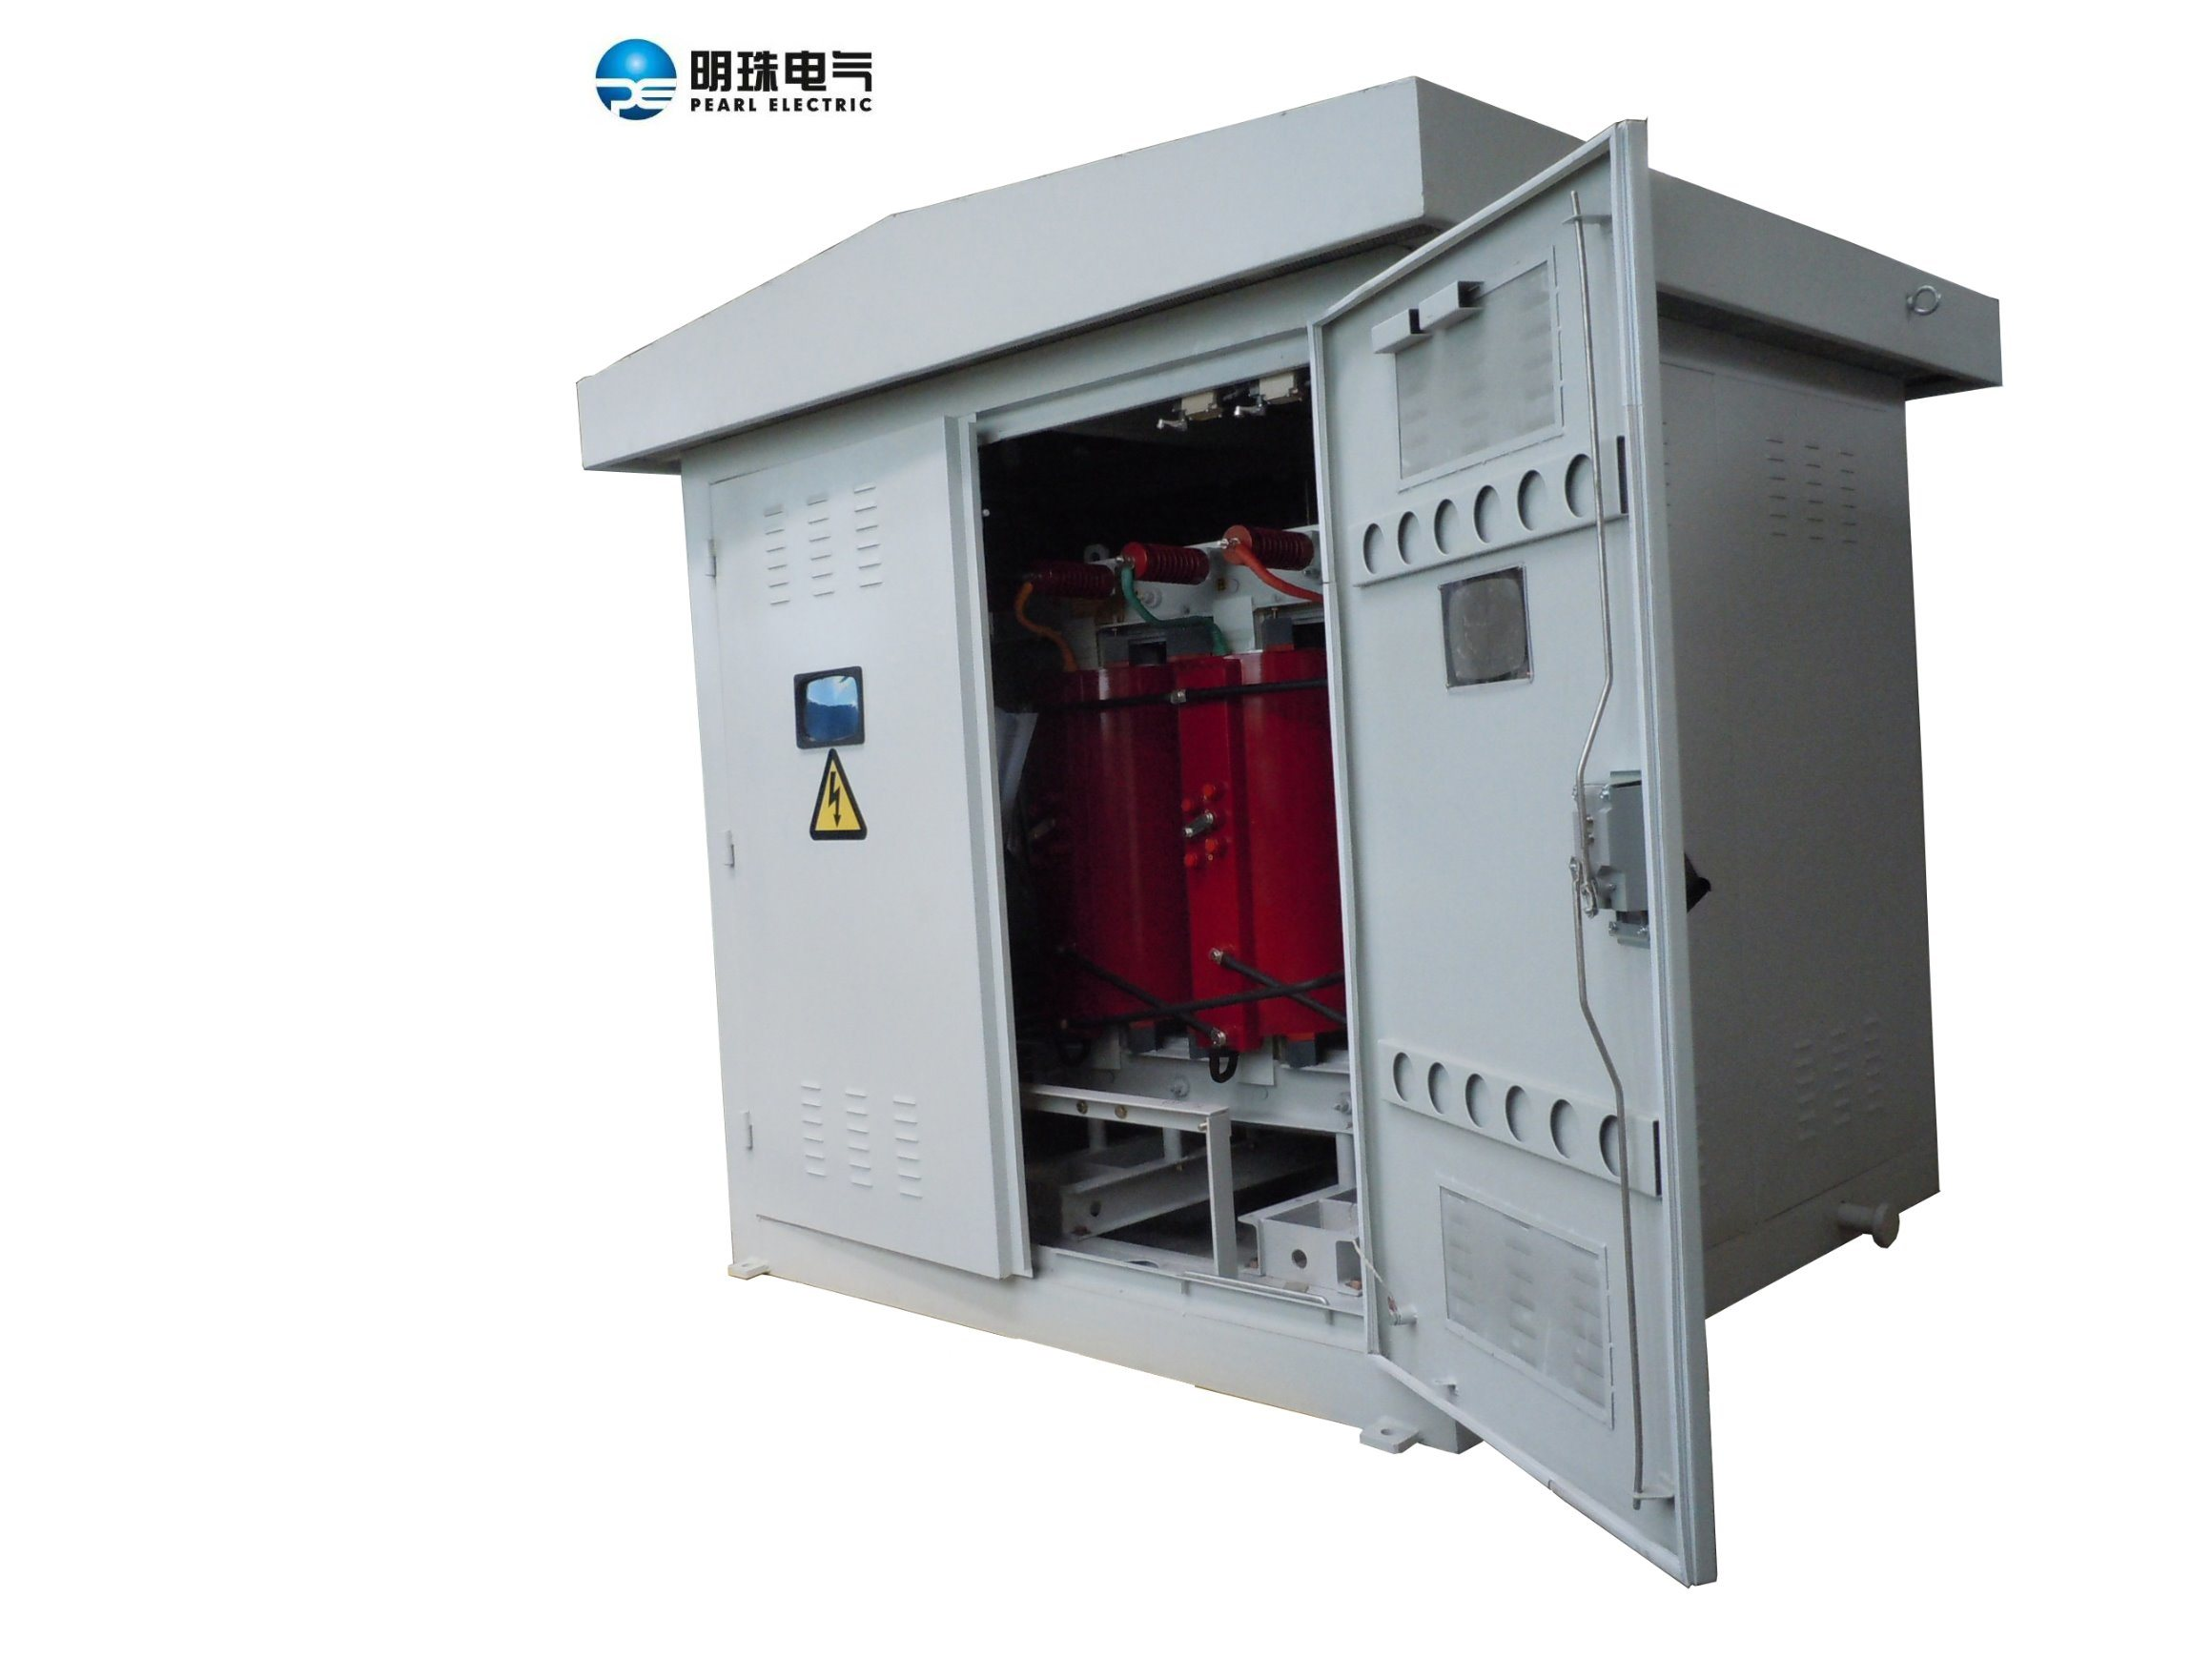 6.6kv Class Oil-Immersed Distribution Transformer